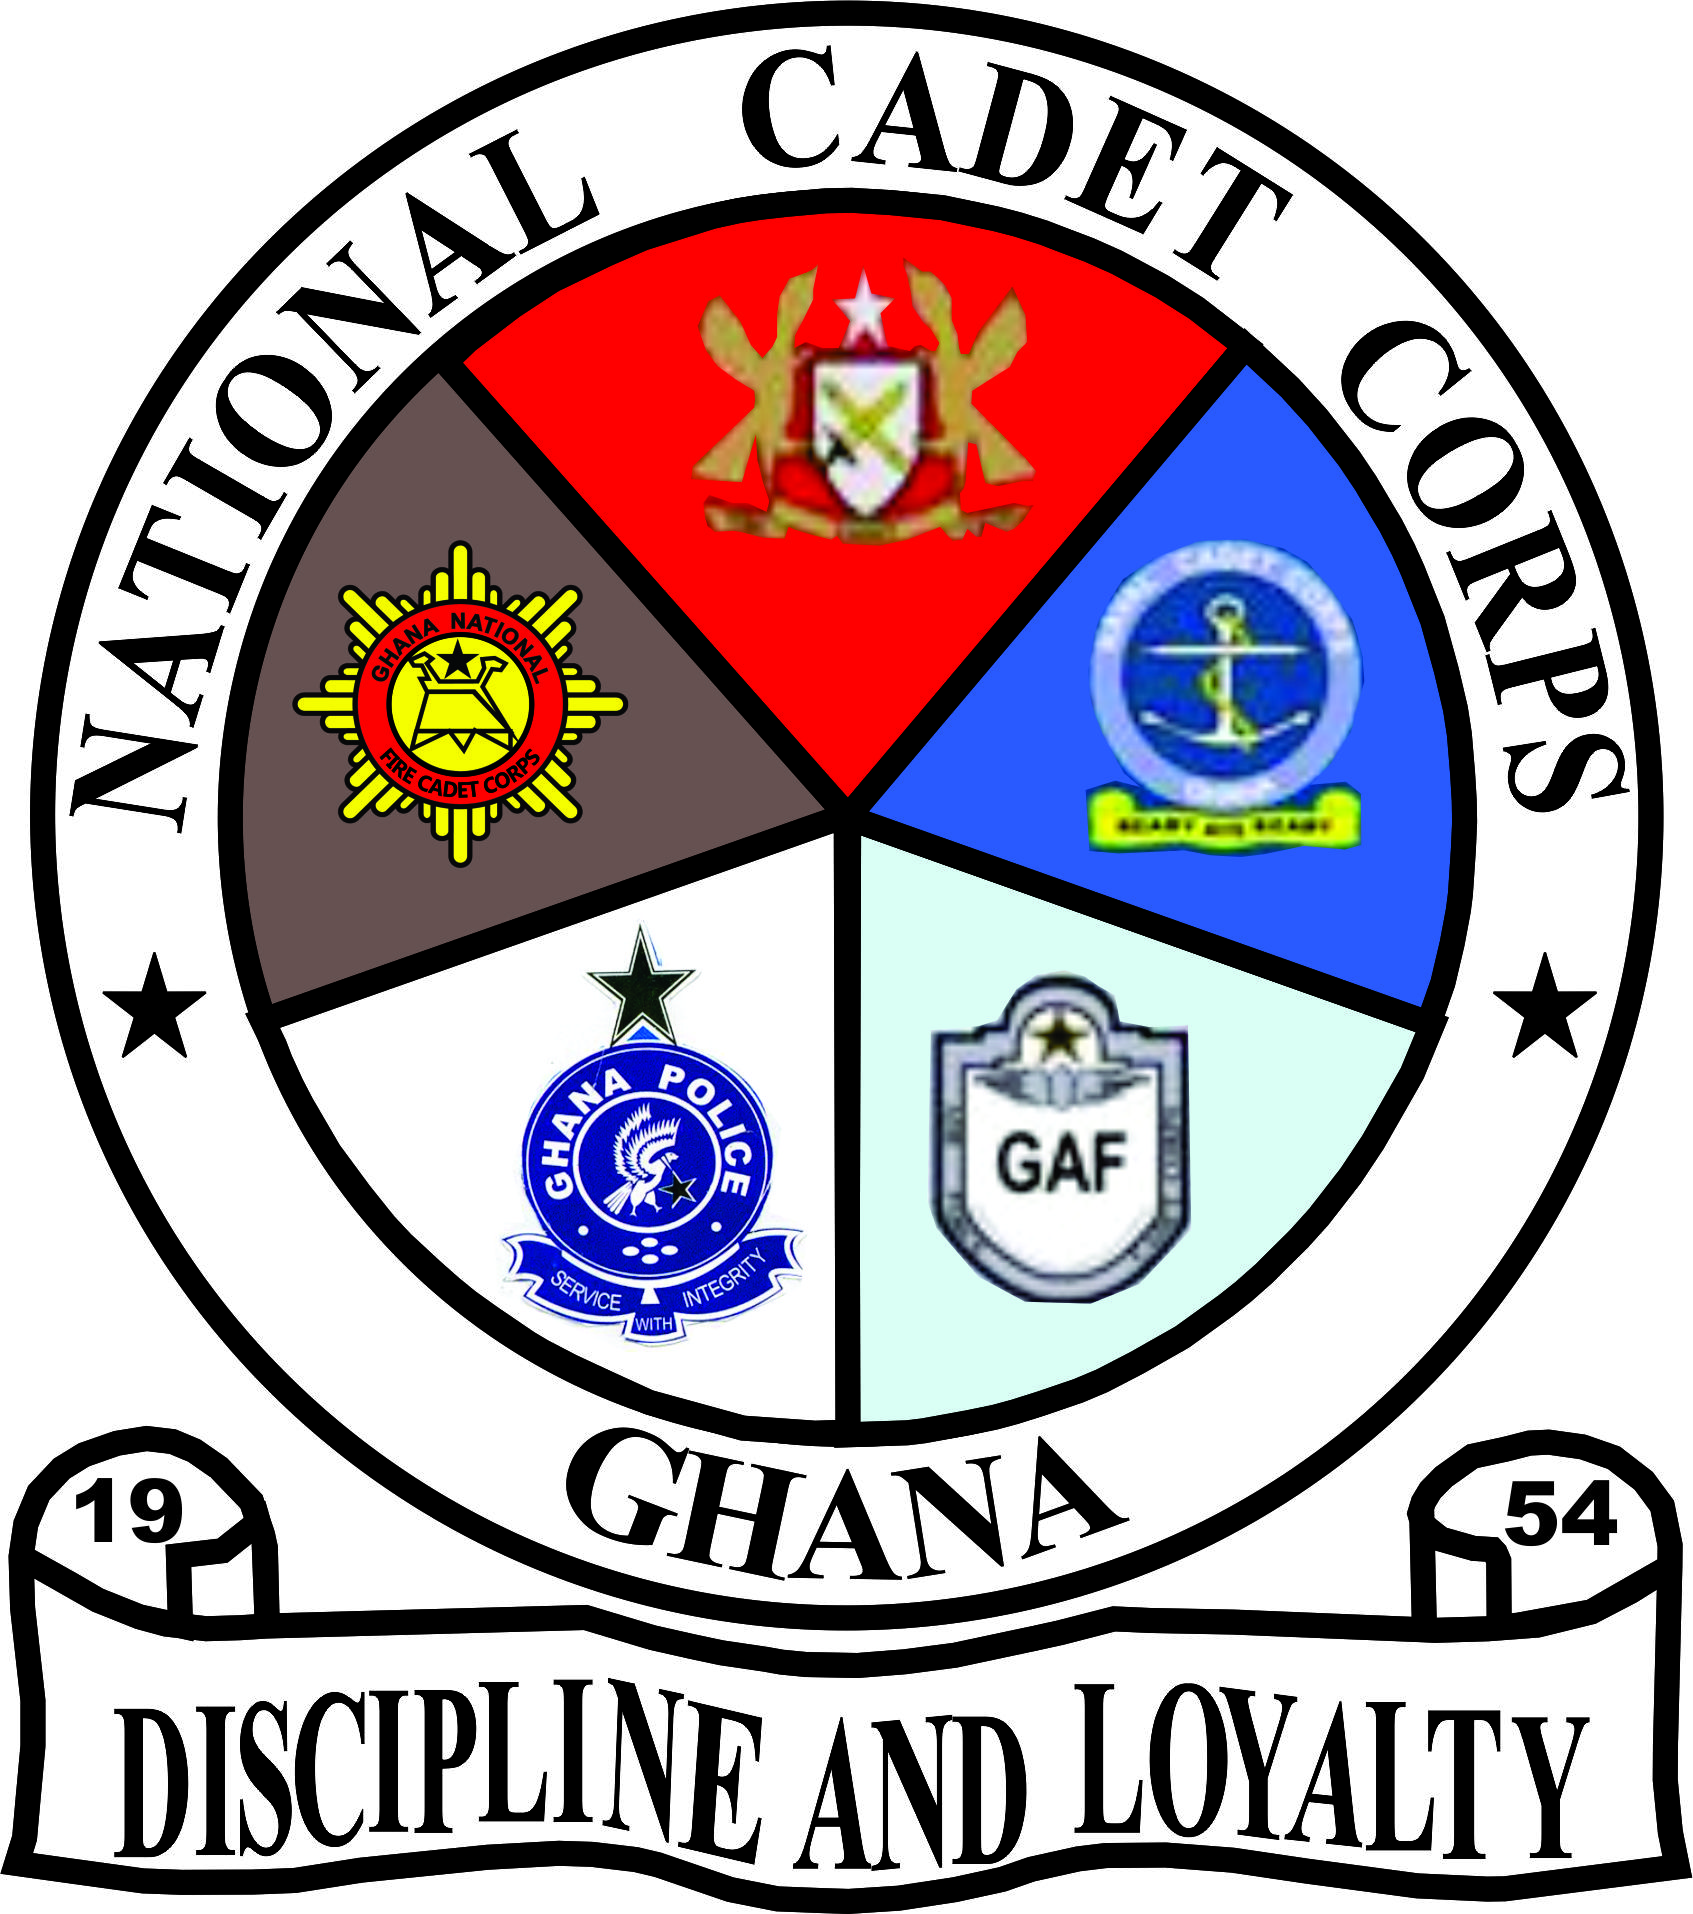 Cadet Png - File:NCCG (National Cadet Corps Ghana).png - Wikimedia Commons